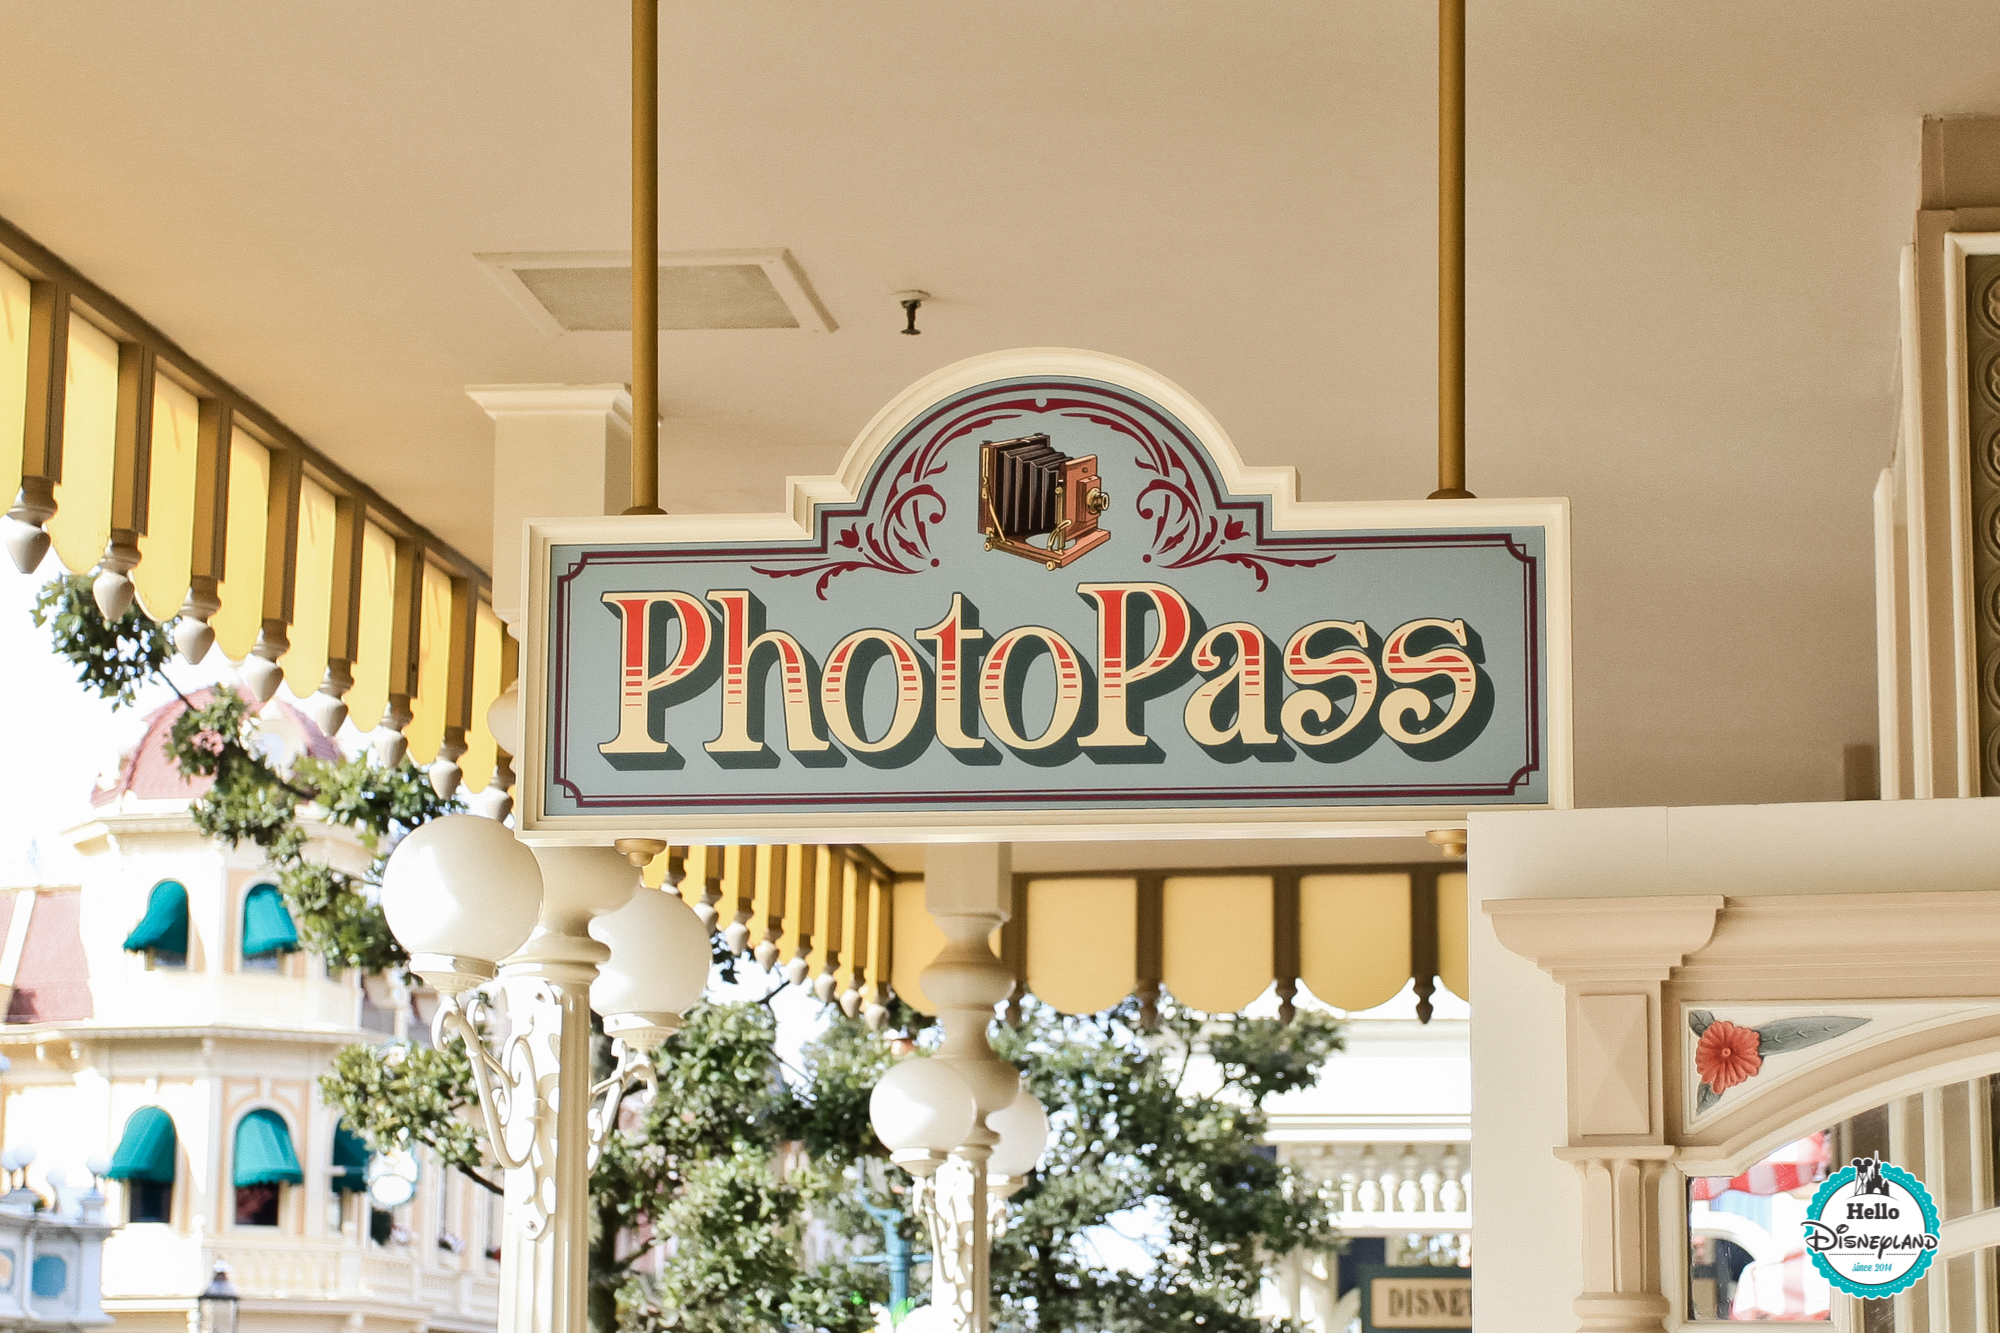 PhotoPass + Disneyland Paris fonctionnement